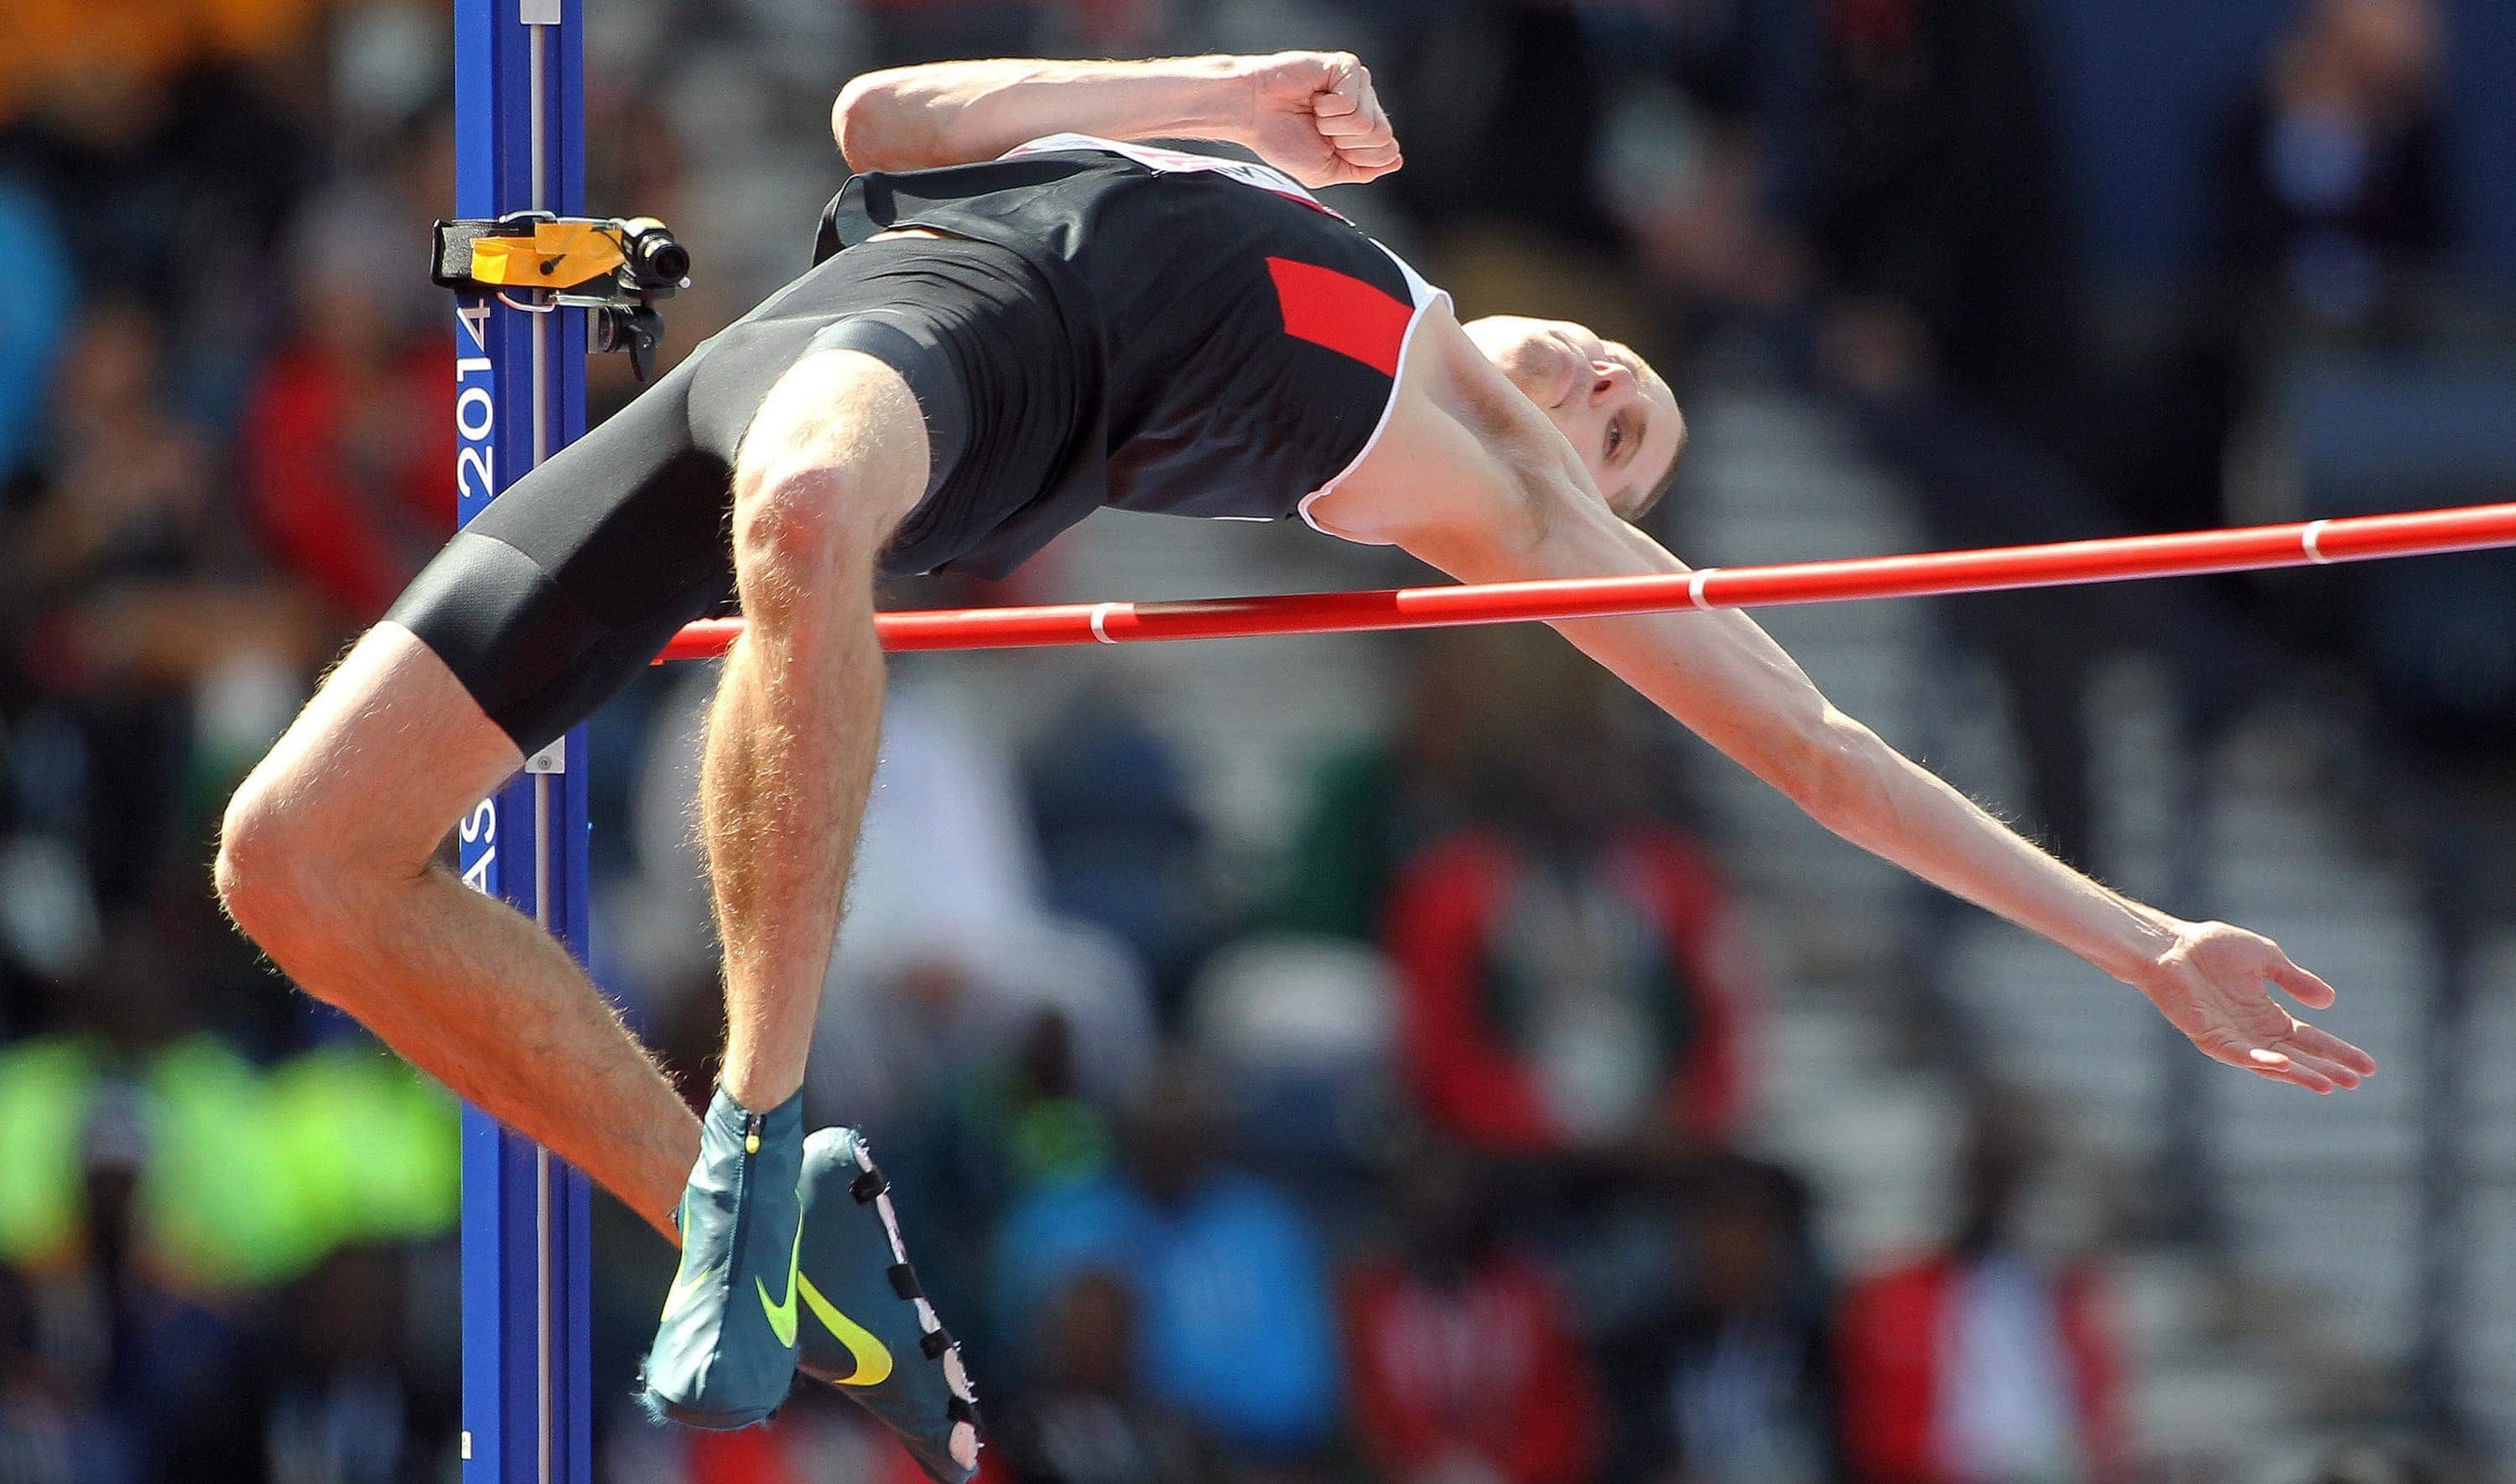 zycus highjump kewill High jump is tuition-free academic enrichment program for 7th and 8th graders in chicago we serve talented and motivated students from families of limited financial means.